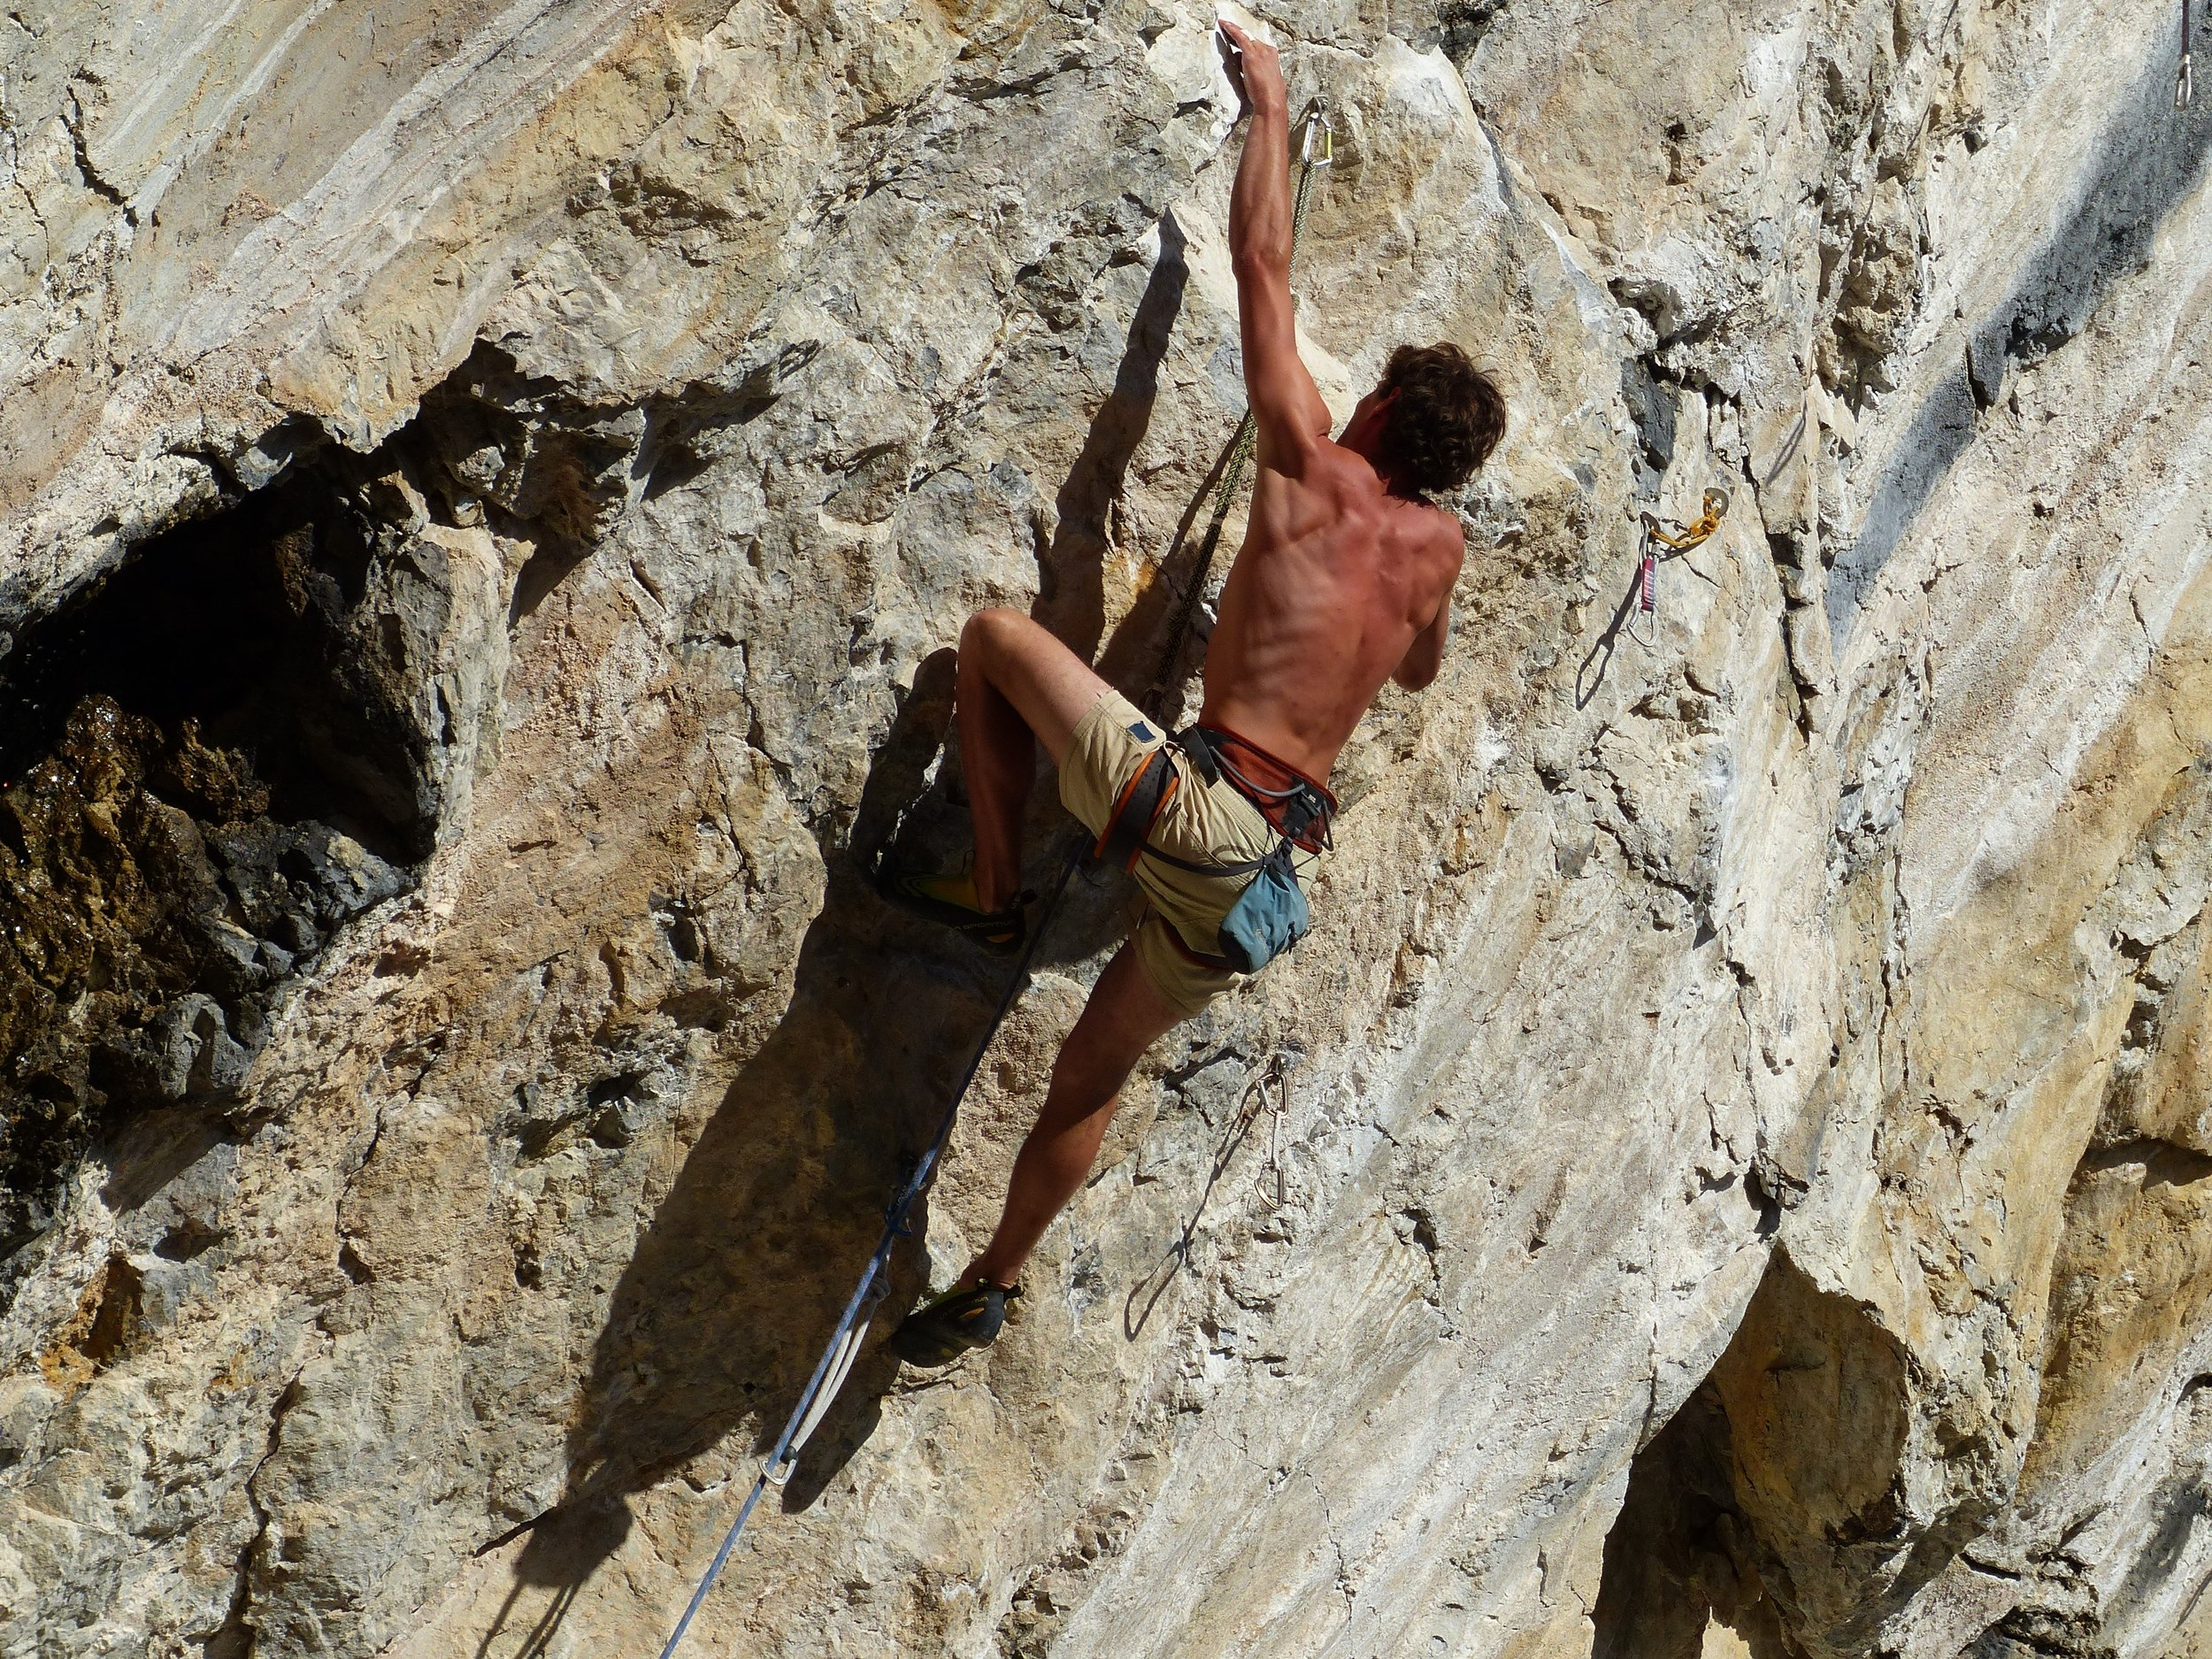 In rock climbing, impressive strength in the arms and upper body is useless without equally developed hands.